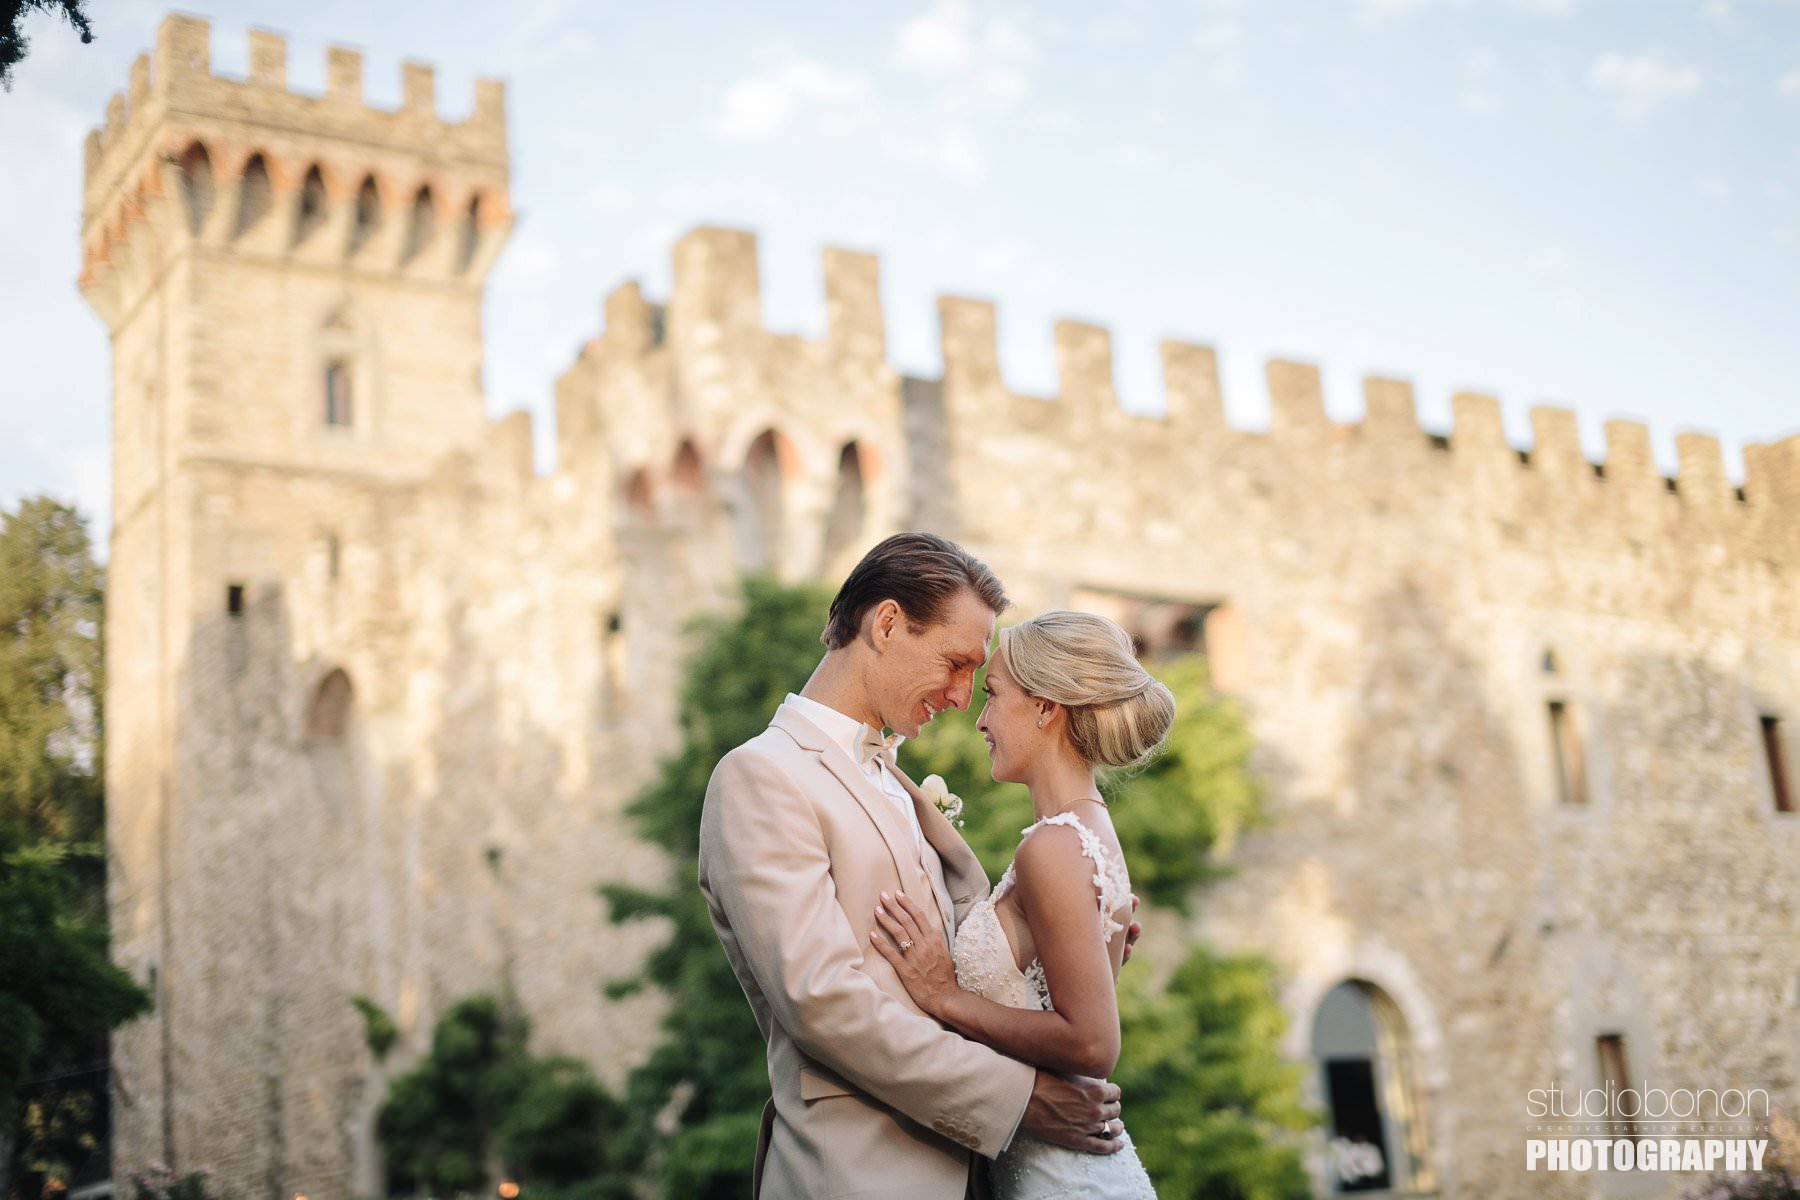 Castle destination wedding portrait Tuscany. Bride and groom are just married